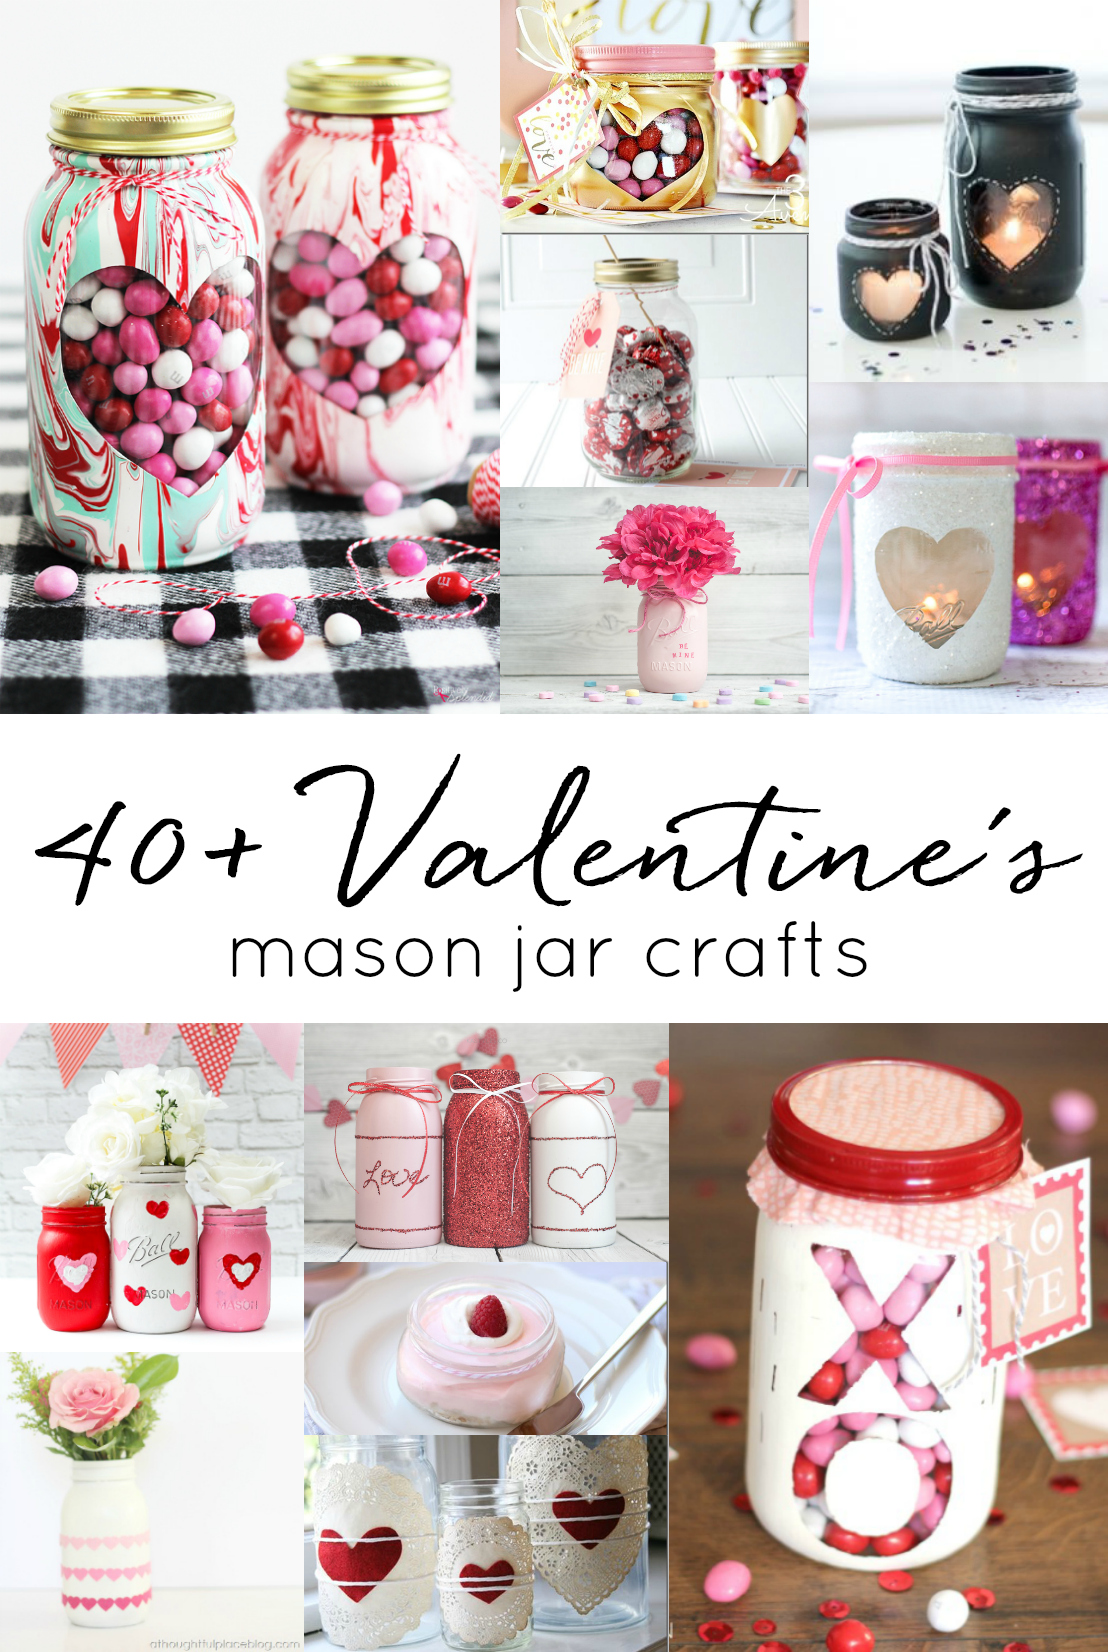 Valentine's Day Craft Ideas in Mason Jars - Valentine Jar Crafts - 40+ DIY Mason Jar Gifts and Decor for Valentine's Day